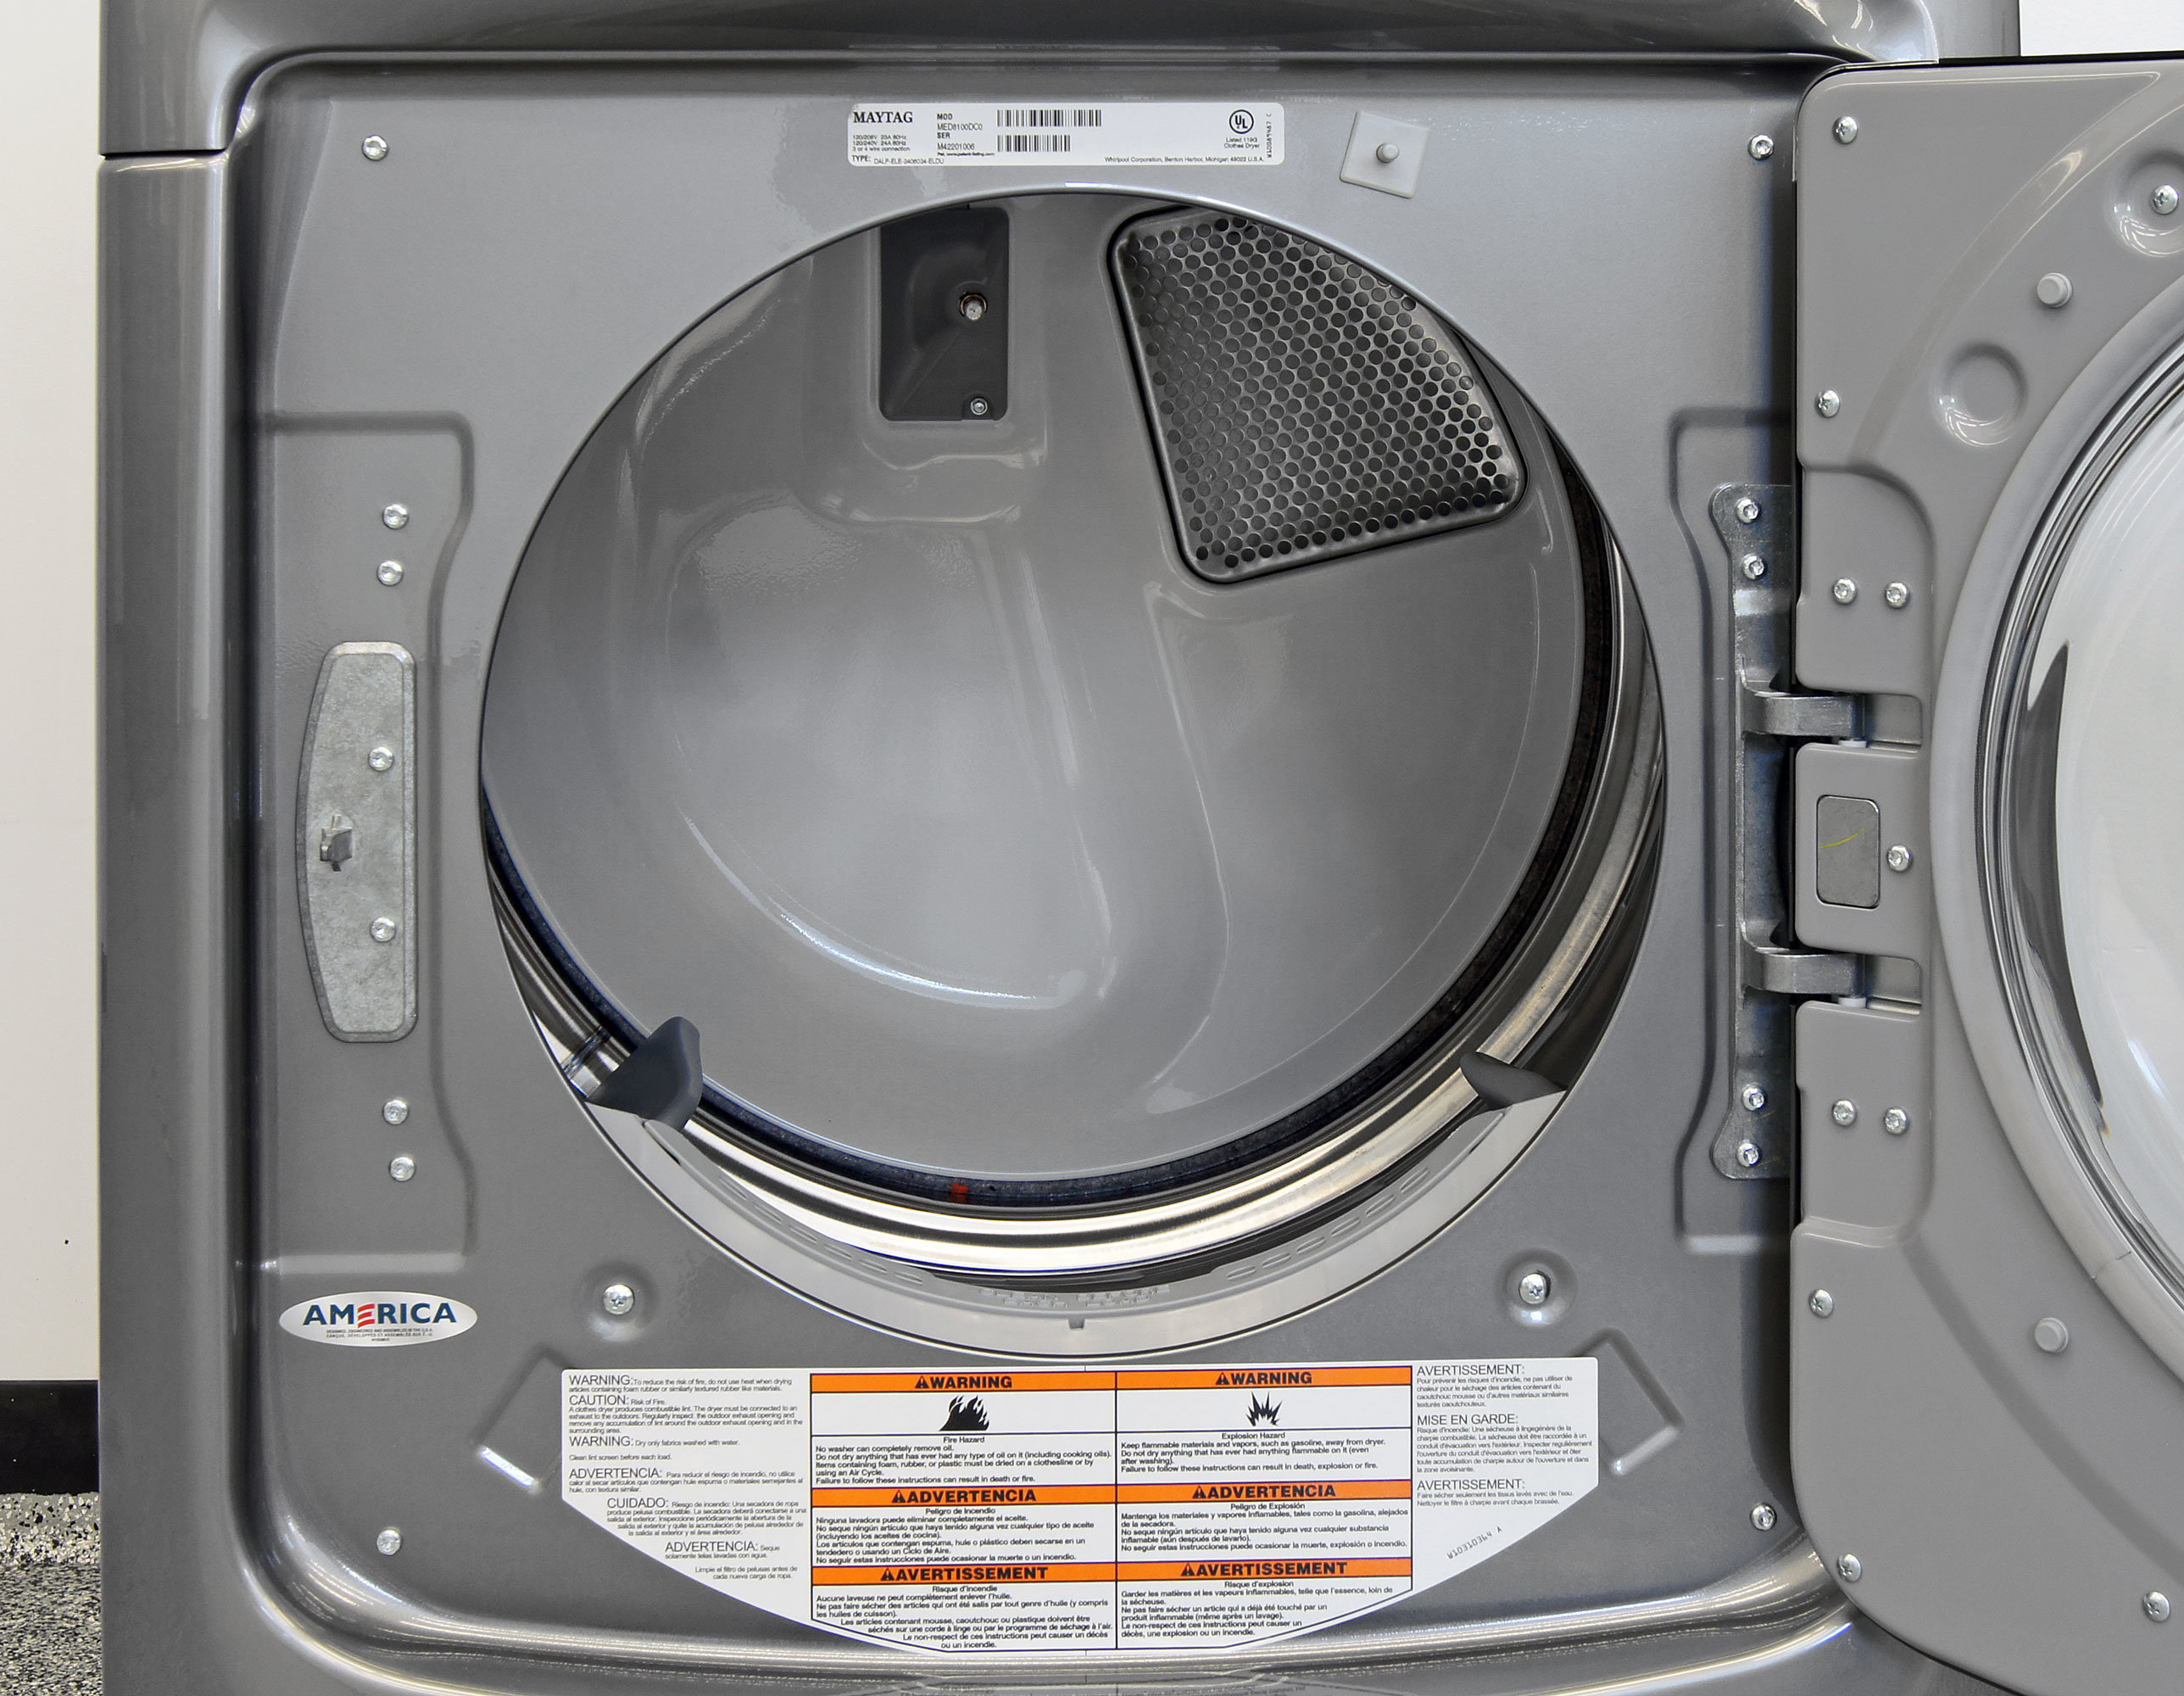 The Maytag Maxima MED8100DC's stainless interior has a 7.4-cubic-foot capacity.